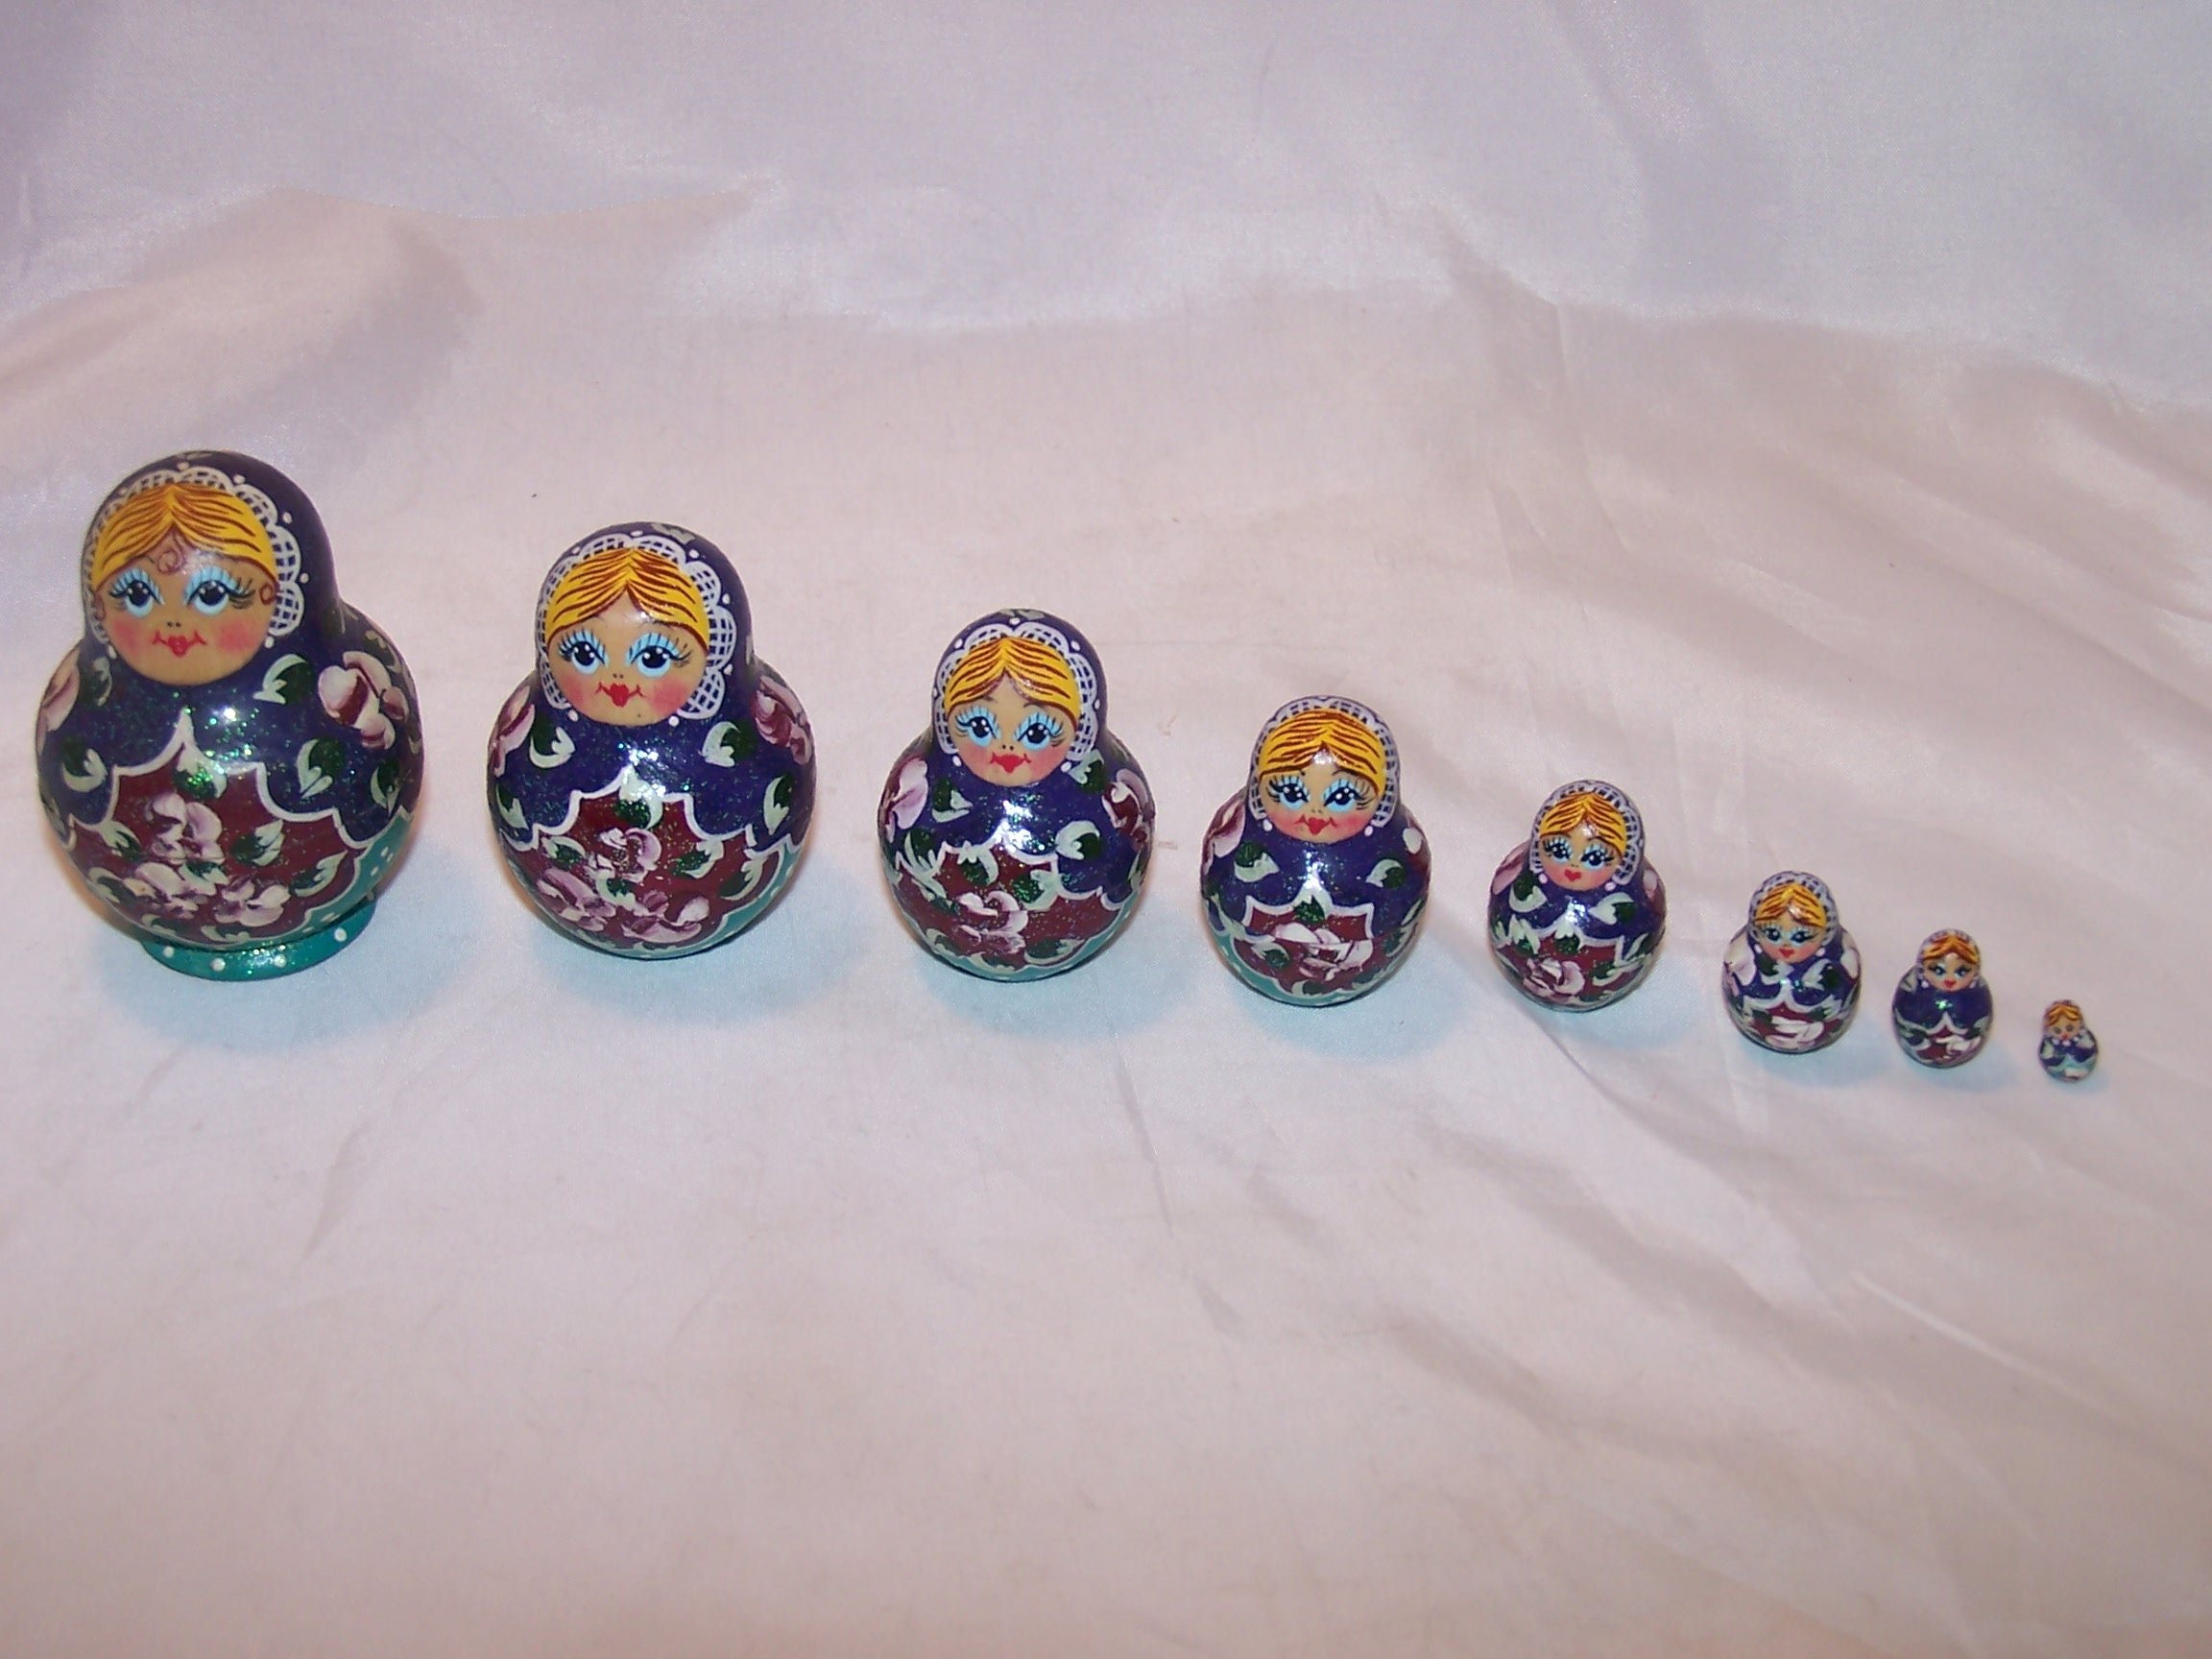 Nesting Doll in Blue with Flowers, 4 Levels, Wood